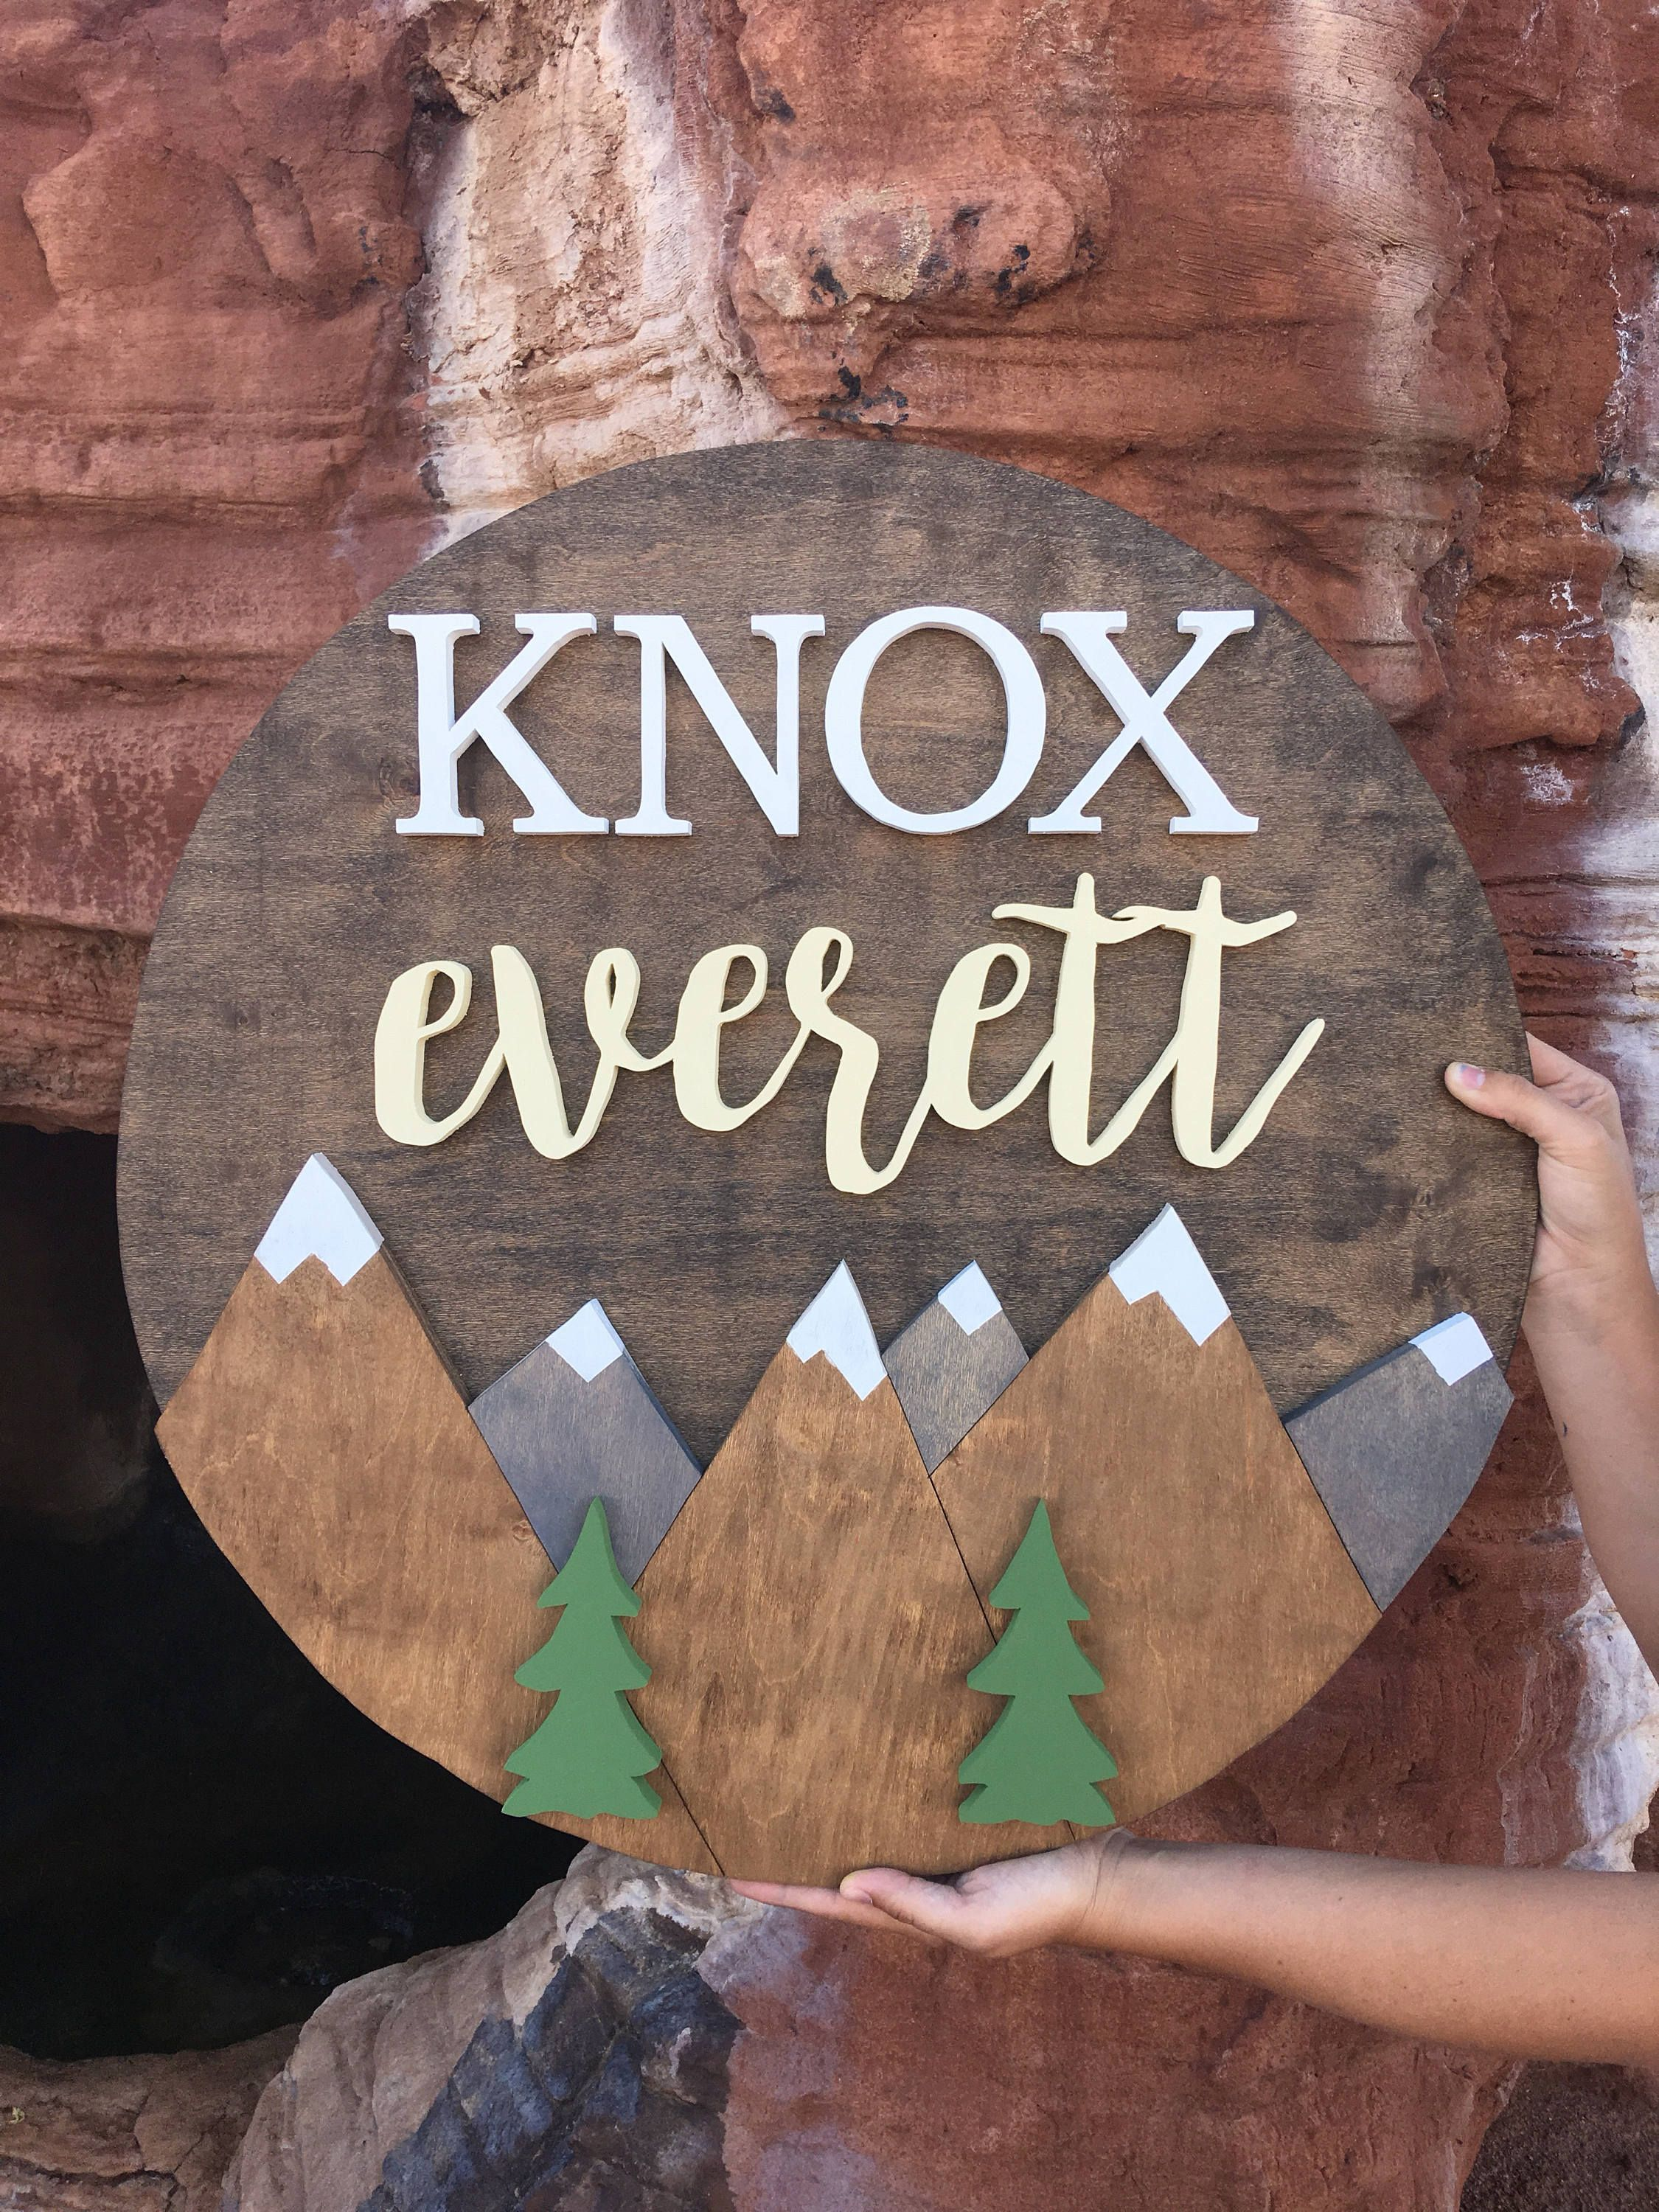 24 Inch Round Custom Name Sign With Mountains Nursery Wood Cut Out Decor Baby Wall Hangin